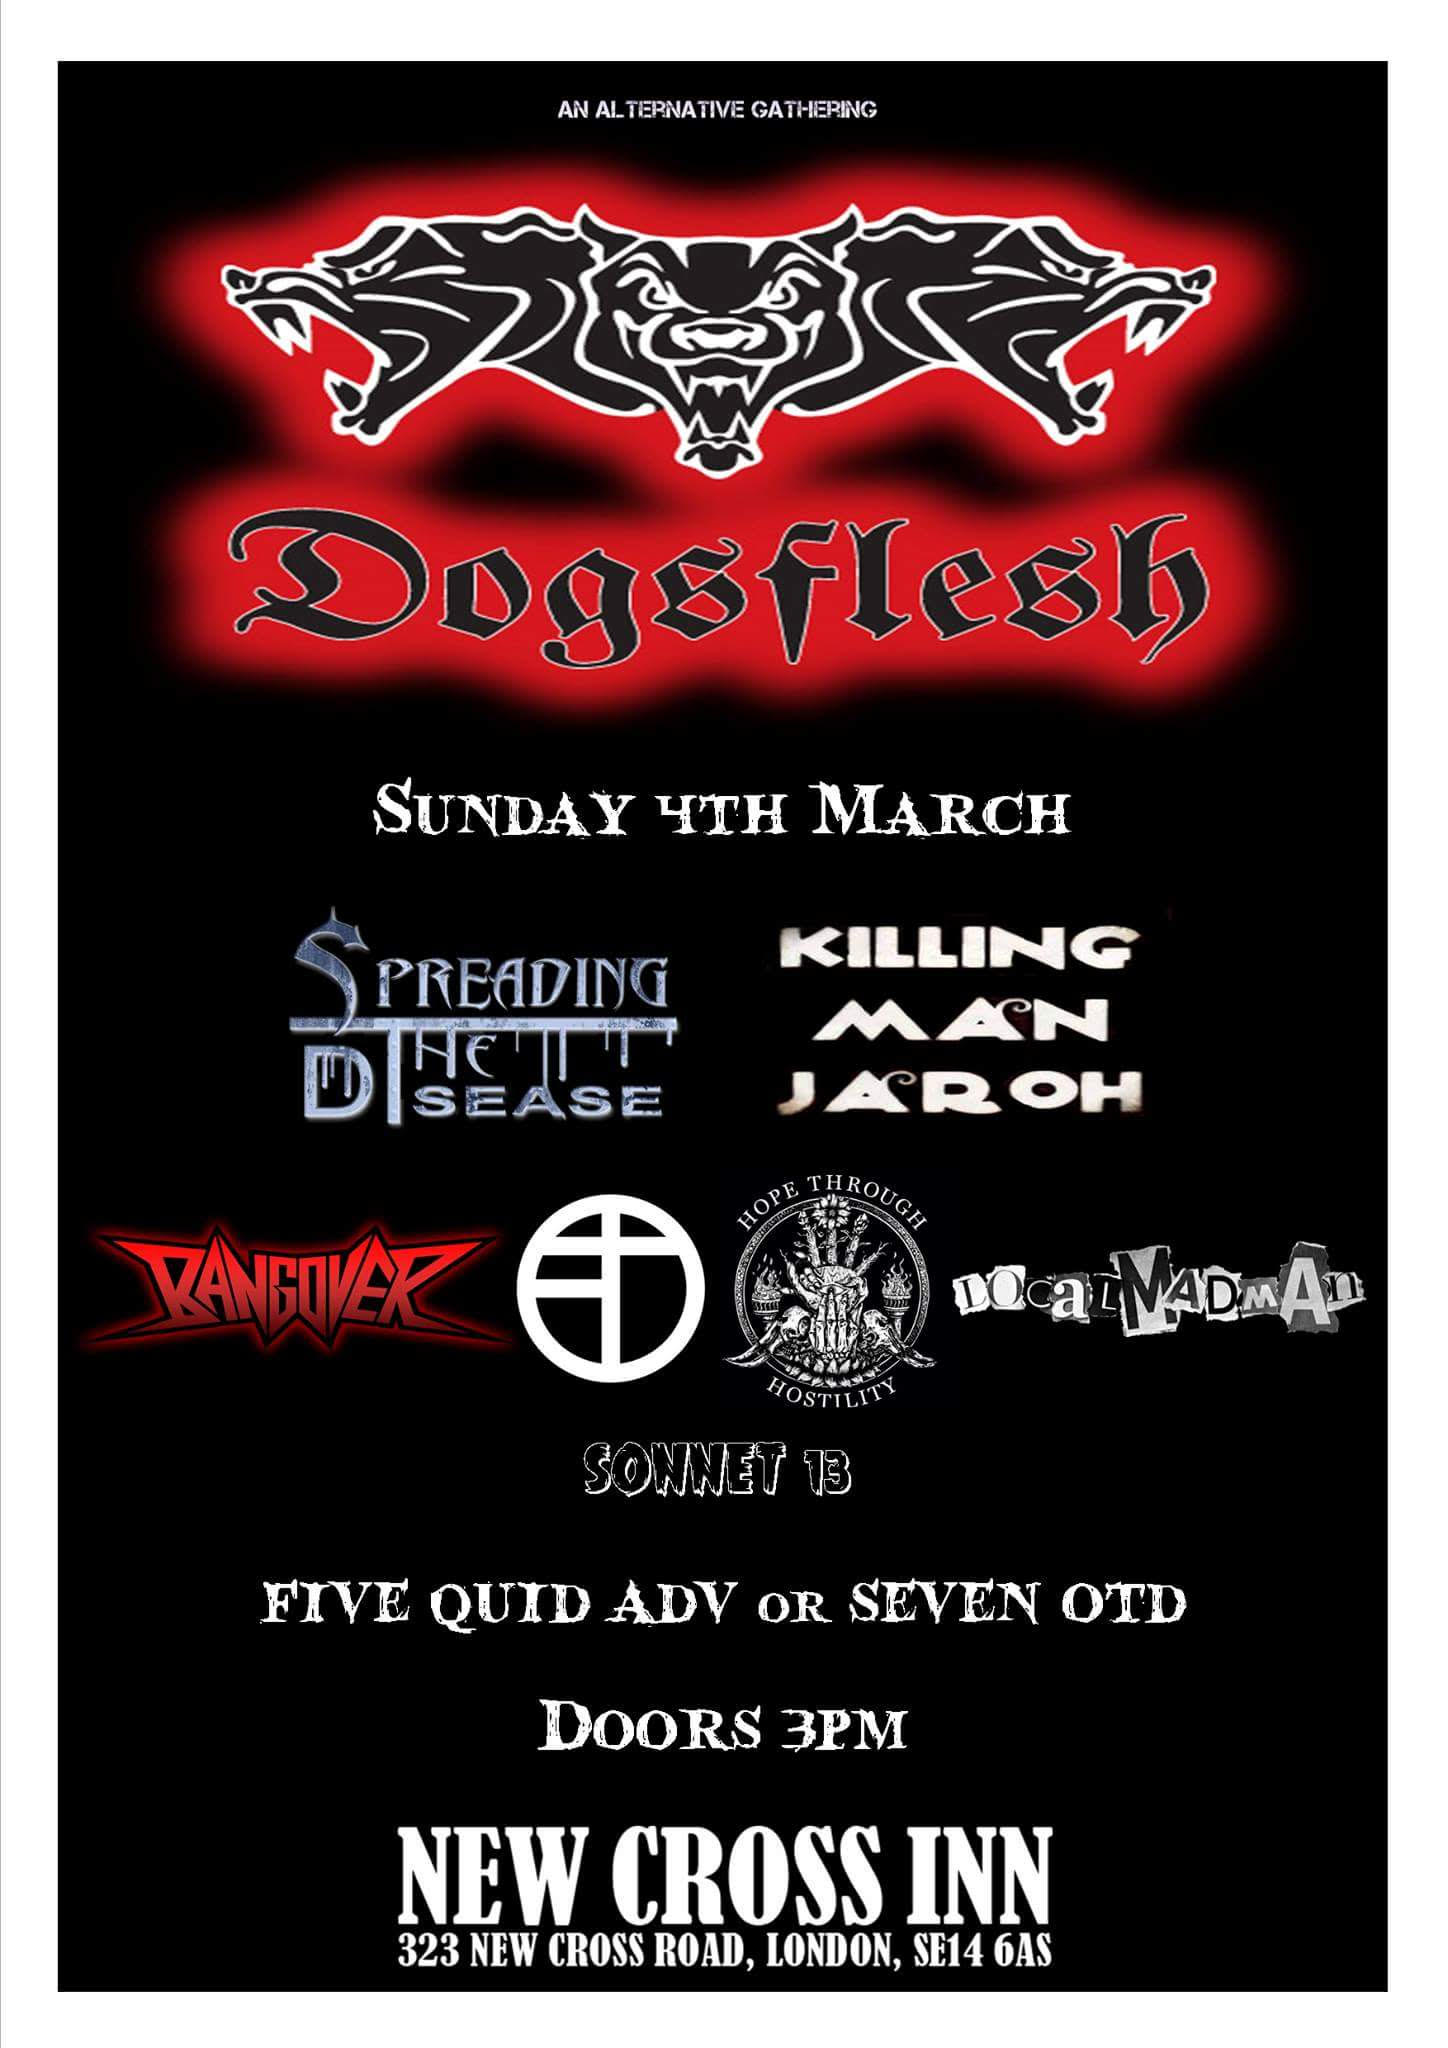 dogflesh STD Poster new cross inn 2018